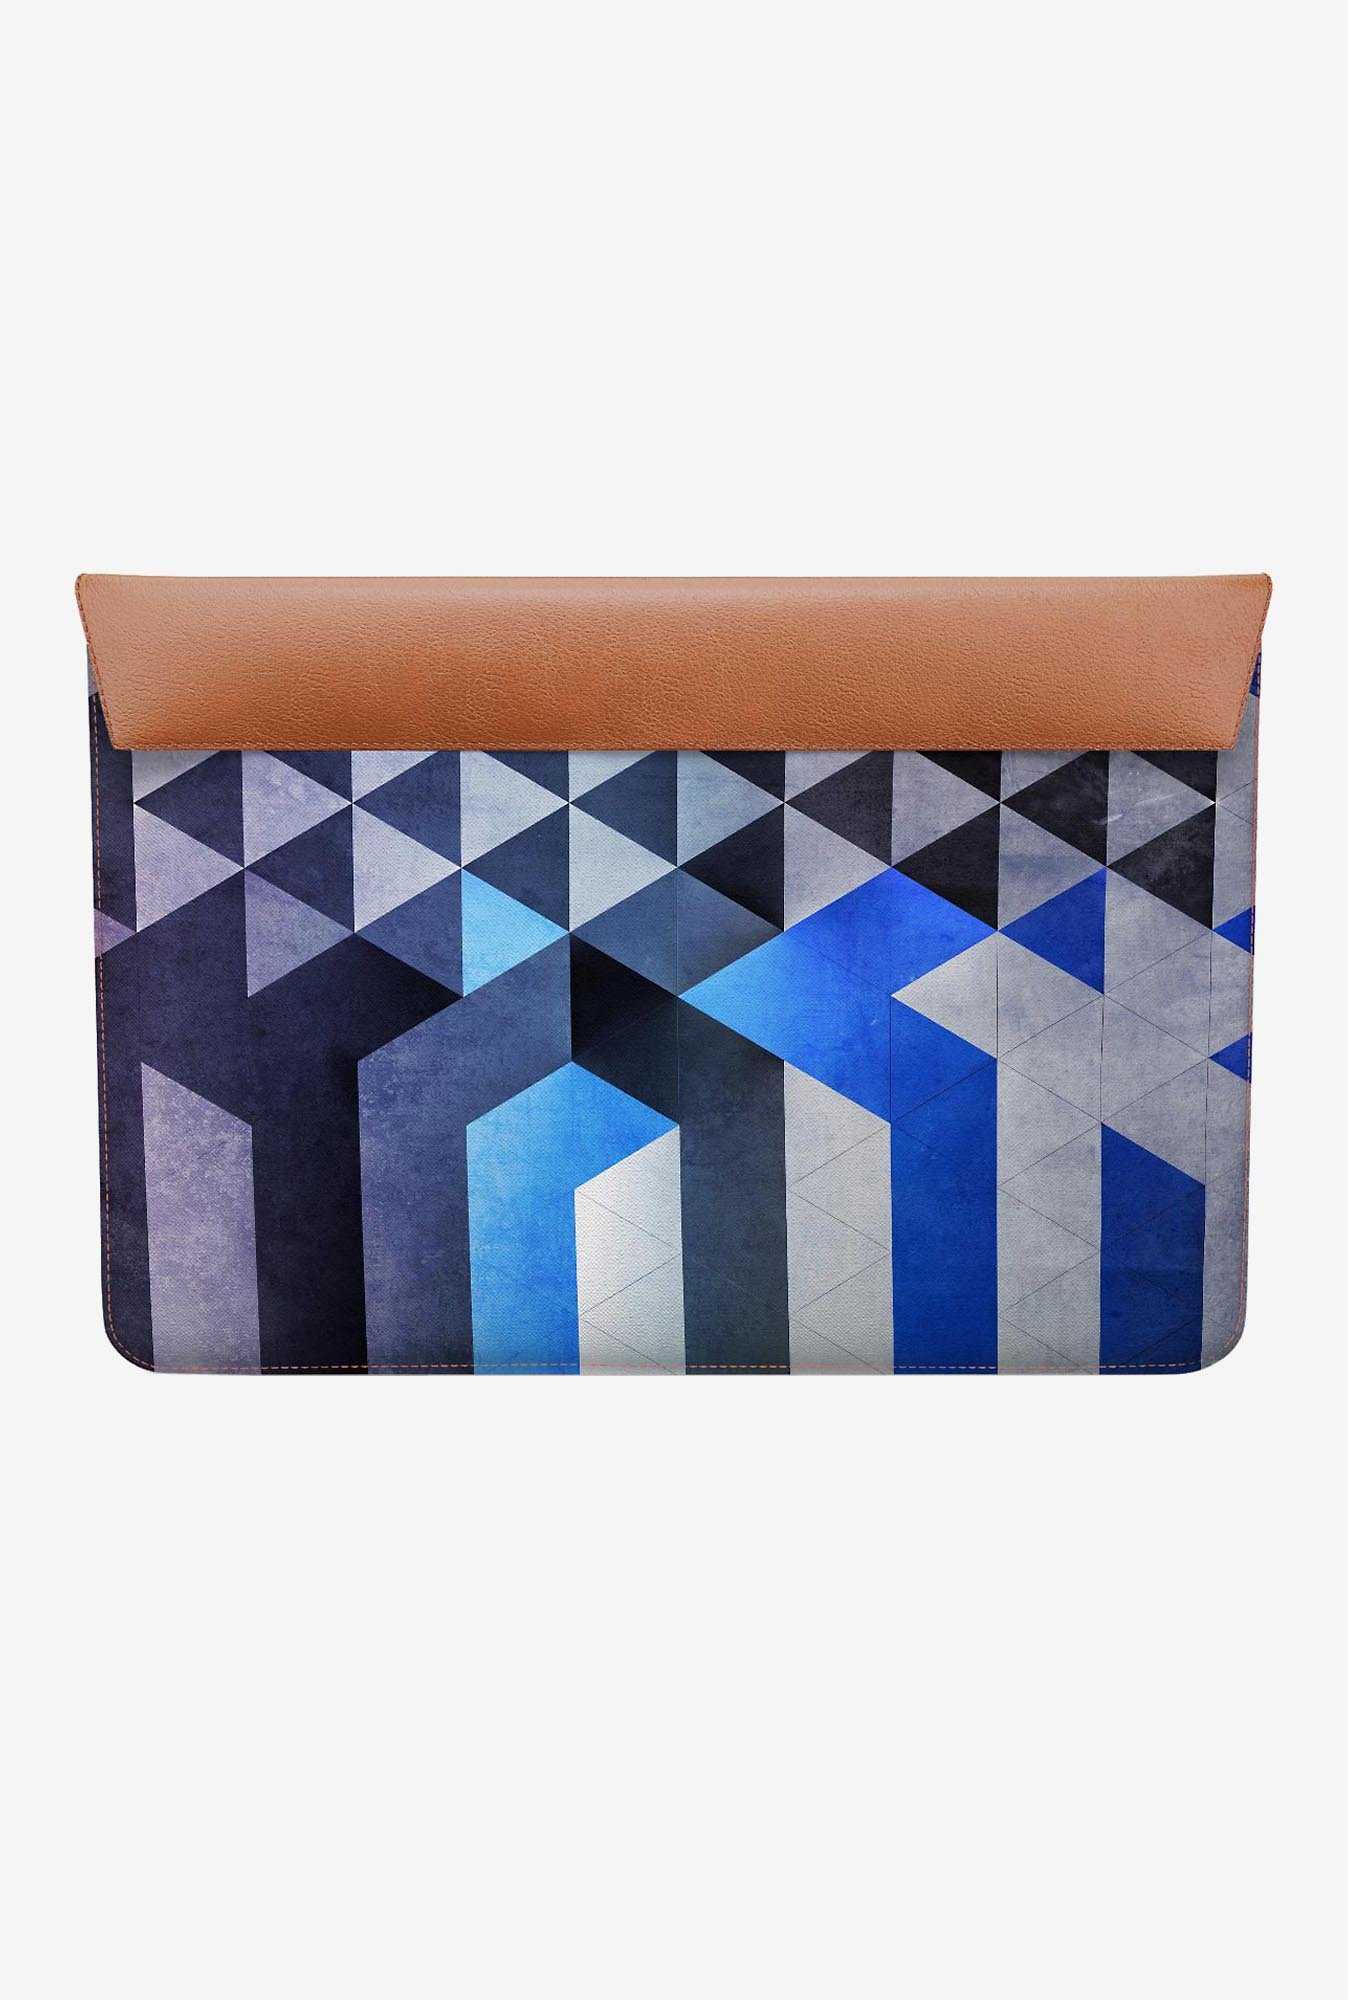 "DailyObjects Kyr Dyyth Macbook Air 11"" Envelope Sleeve"